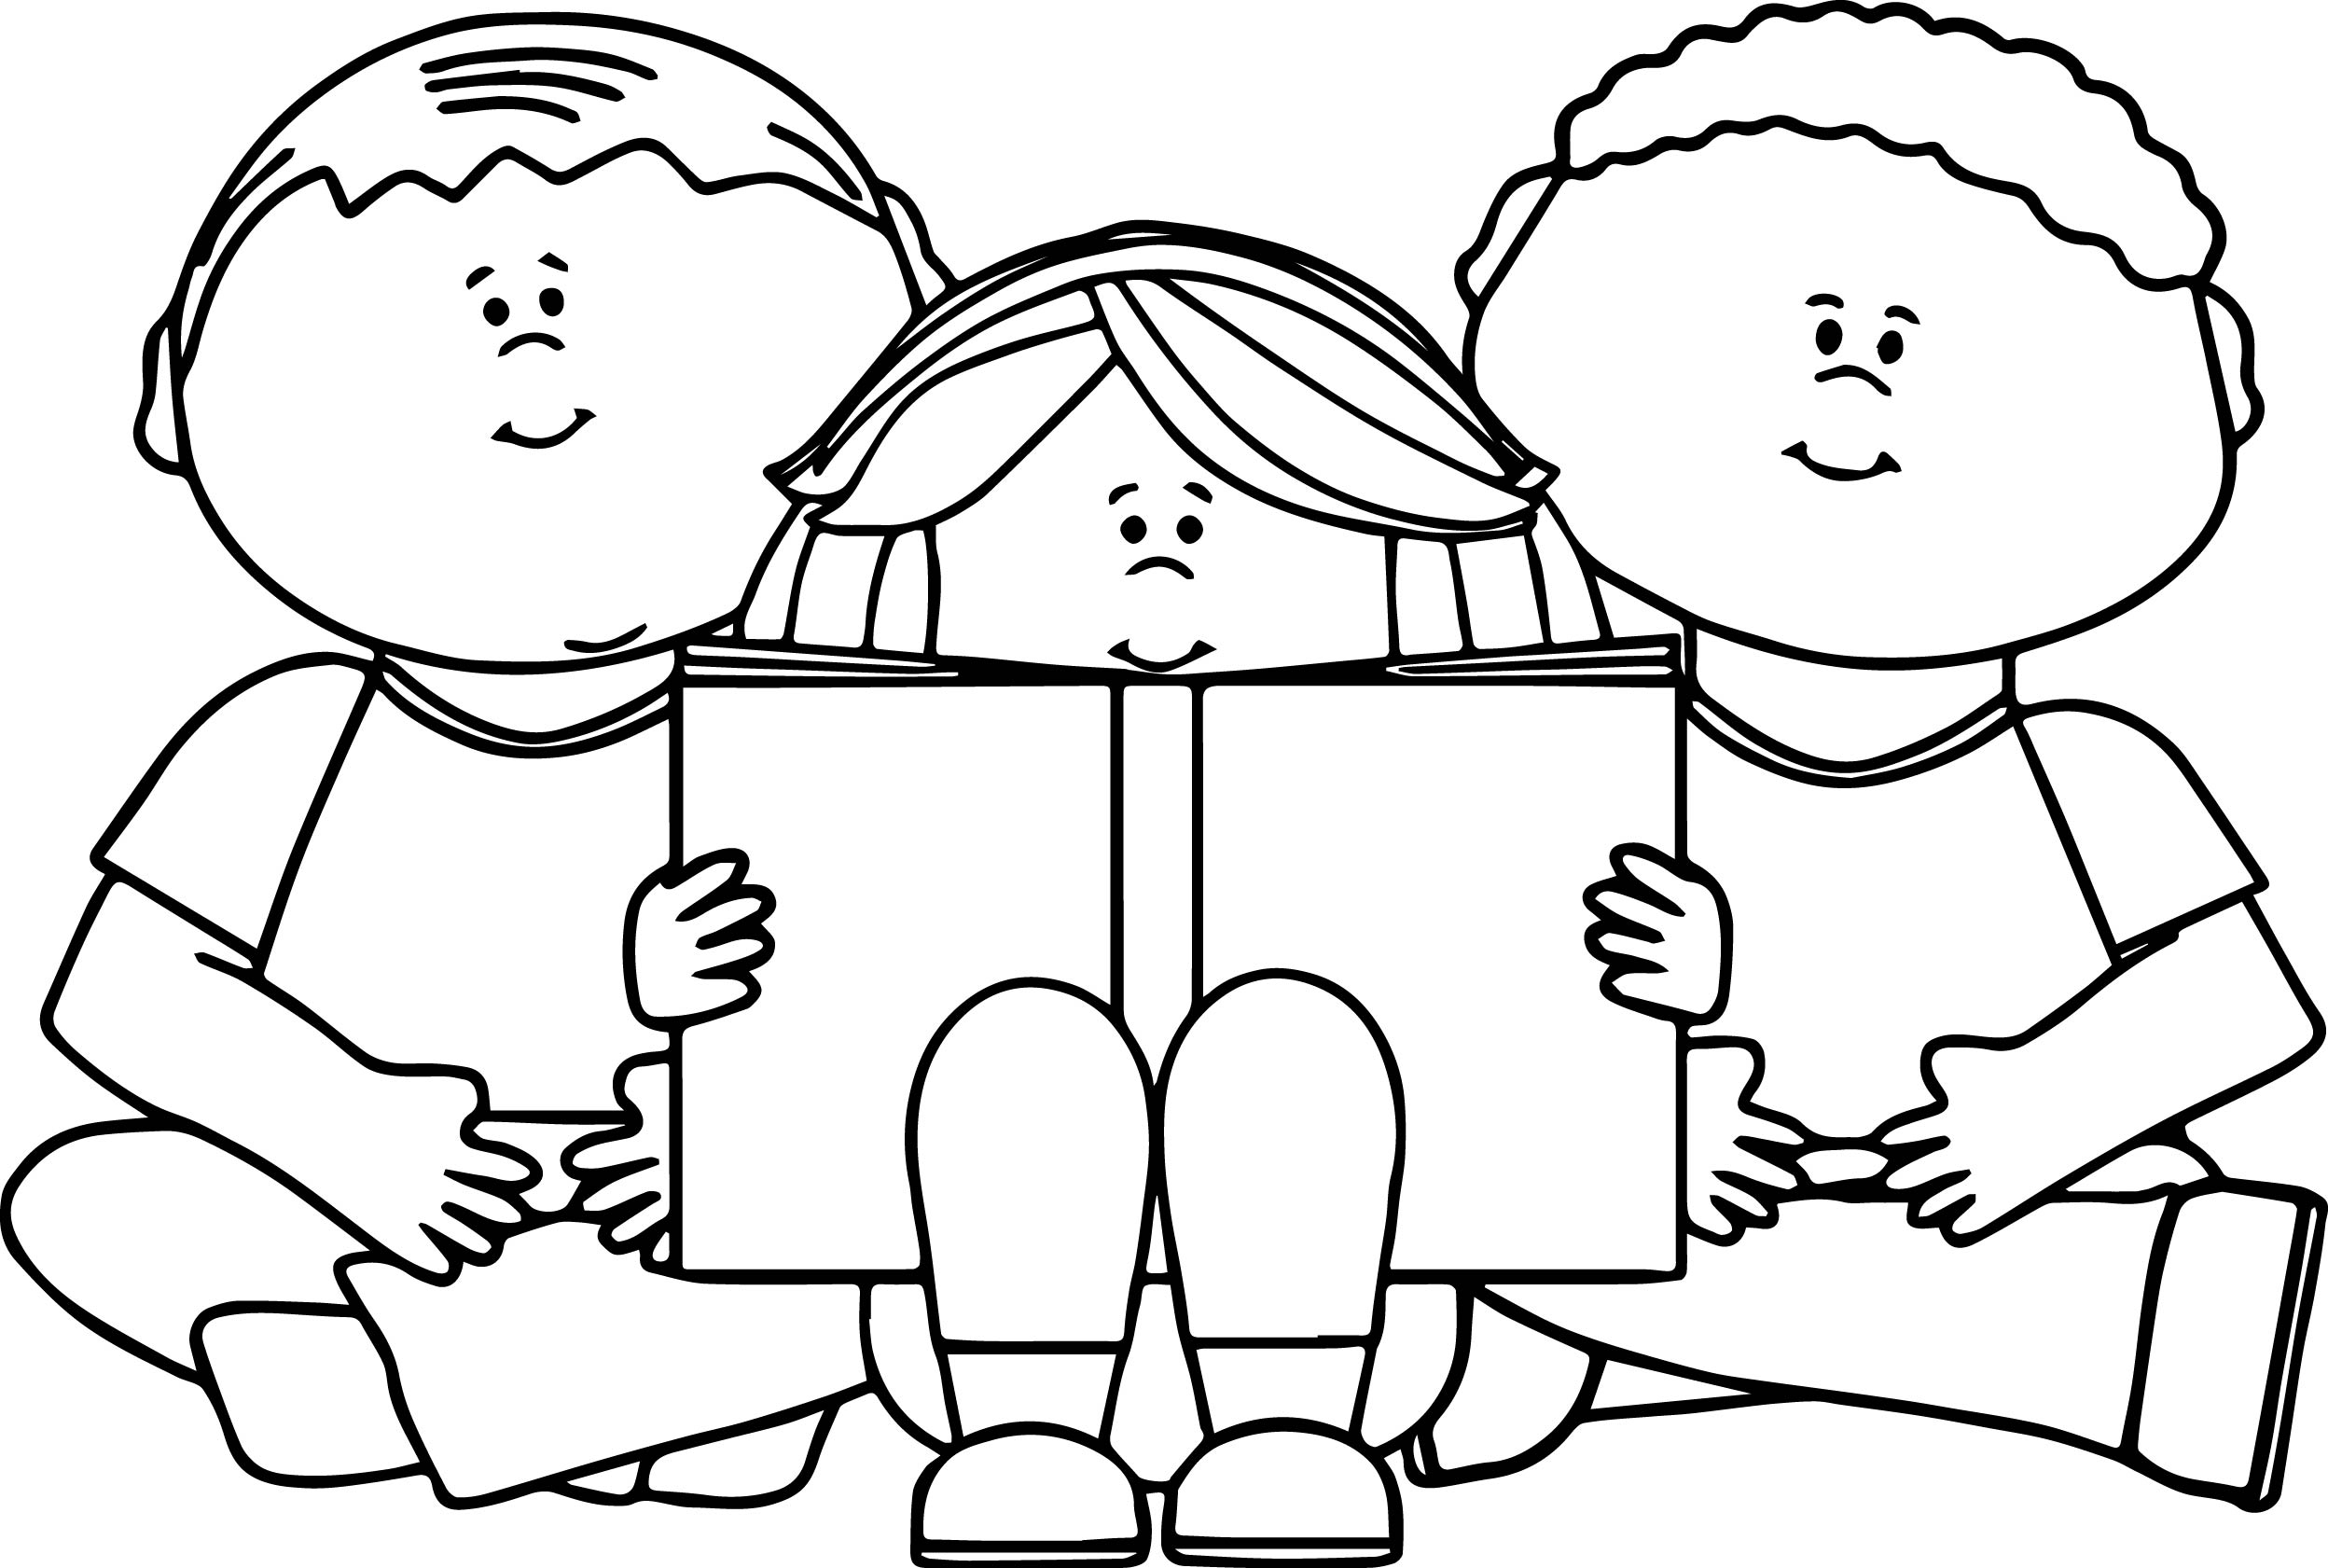 reading coloring worksheets children reading a book coloring book page stock coloring worksheets reading